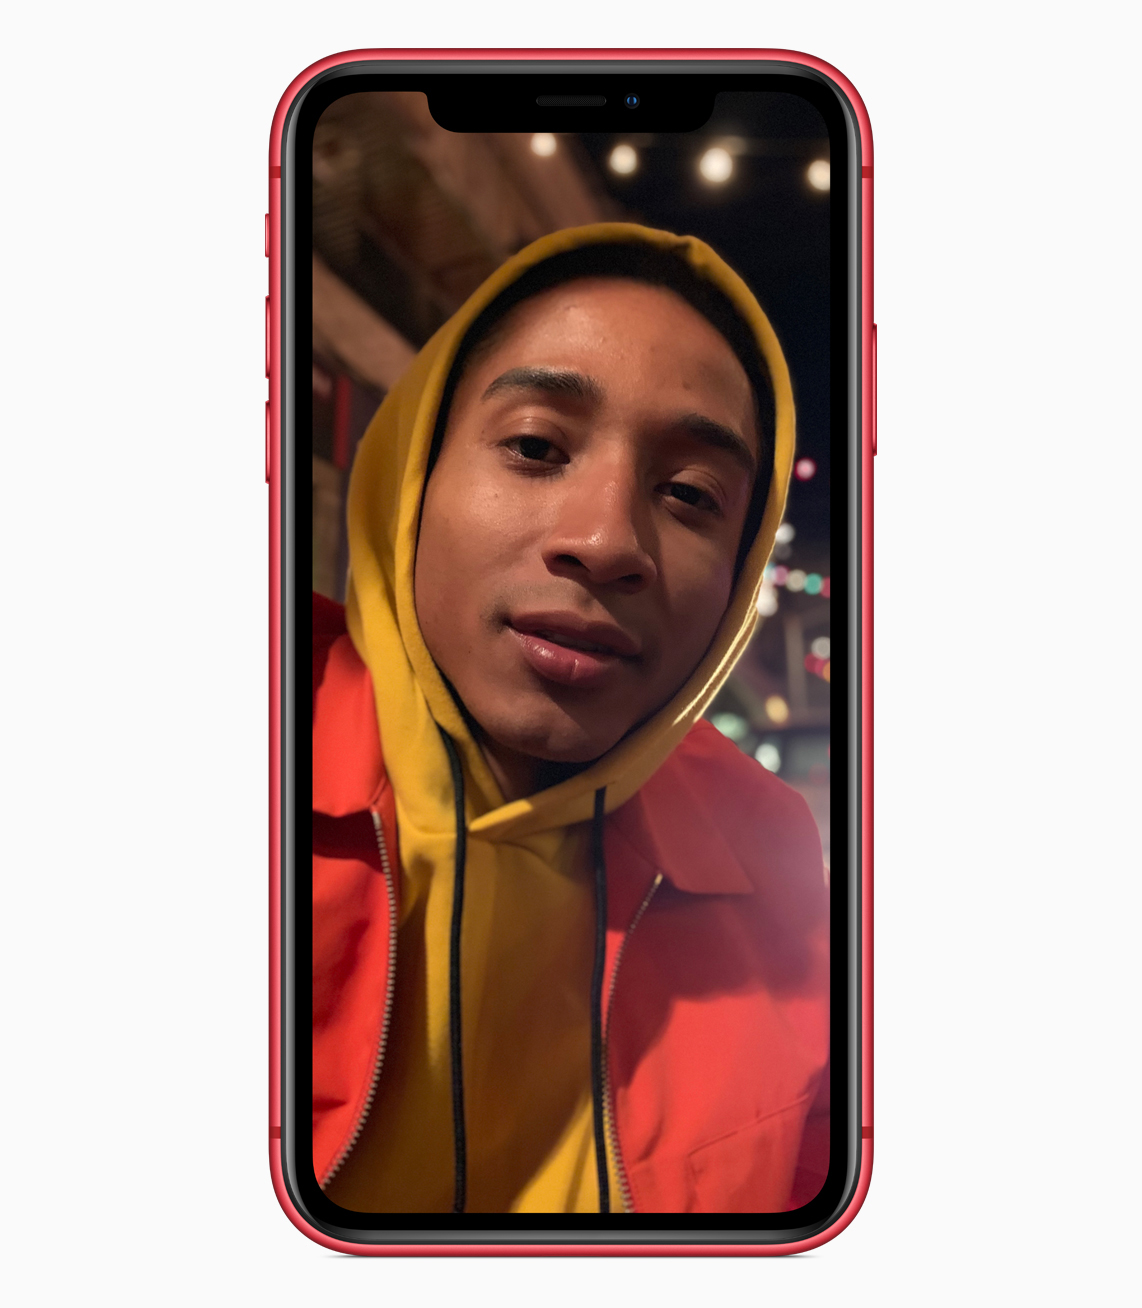 https://www.apple.com/newsroom/images/product/iphone/standard/iPhone_XR_portrait-red_09122018_carousel.jpg.large_2x.jpg